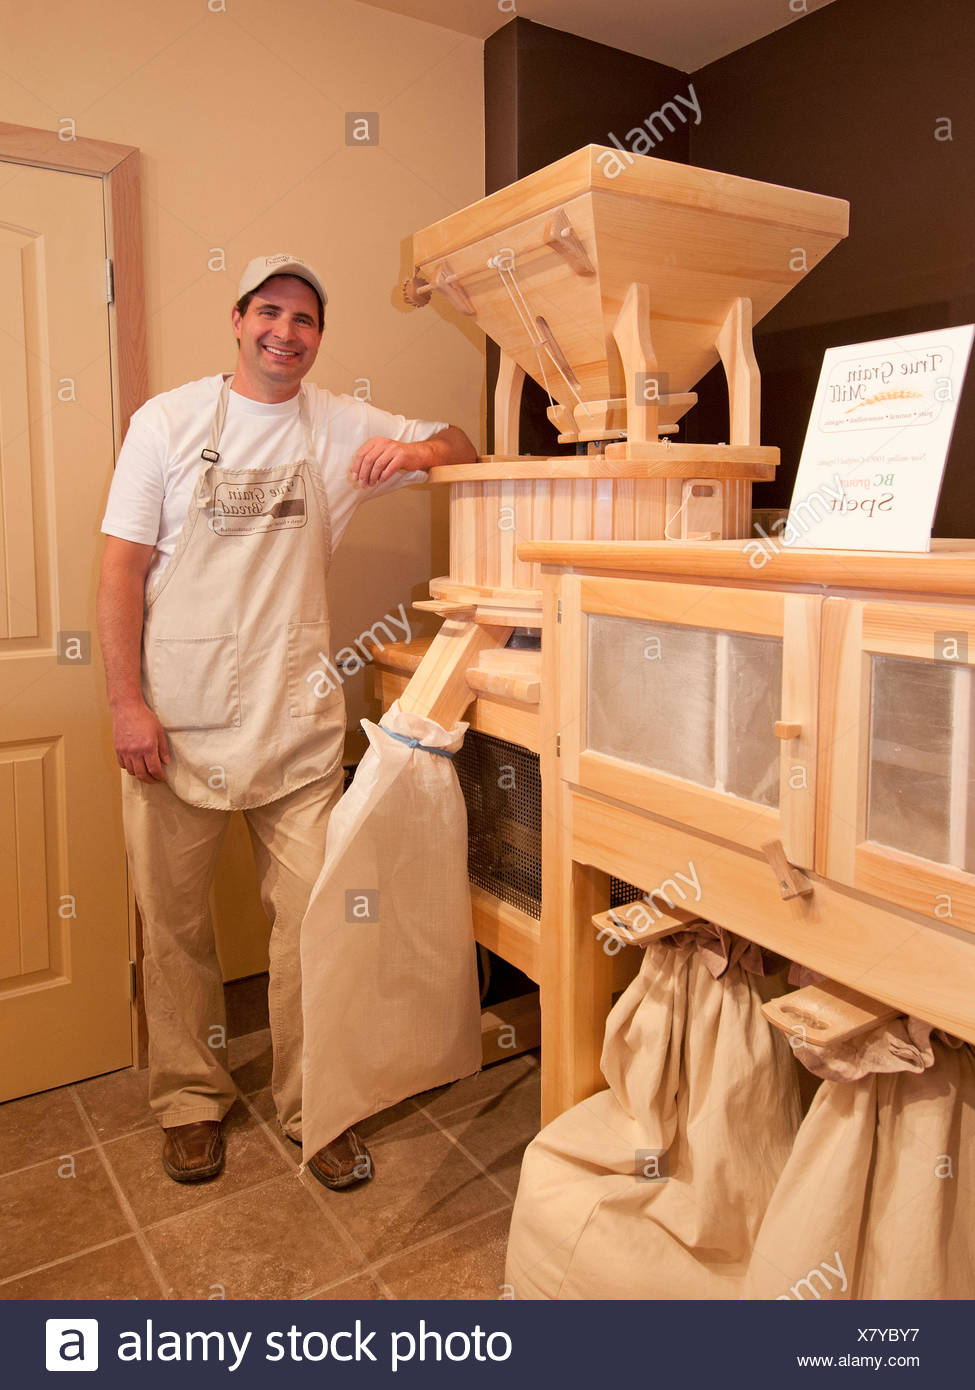 The owner of True Grain Bread in Summerland, British Columbia stands with his flour mill, Okanagan region, Canada - Stock Image